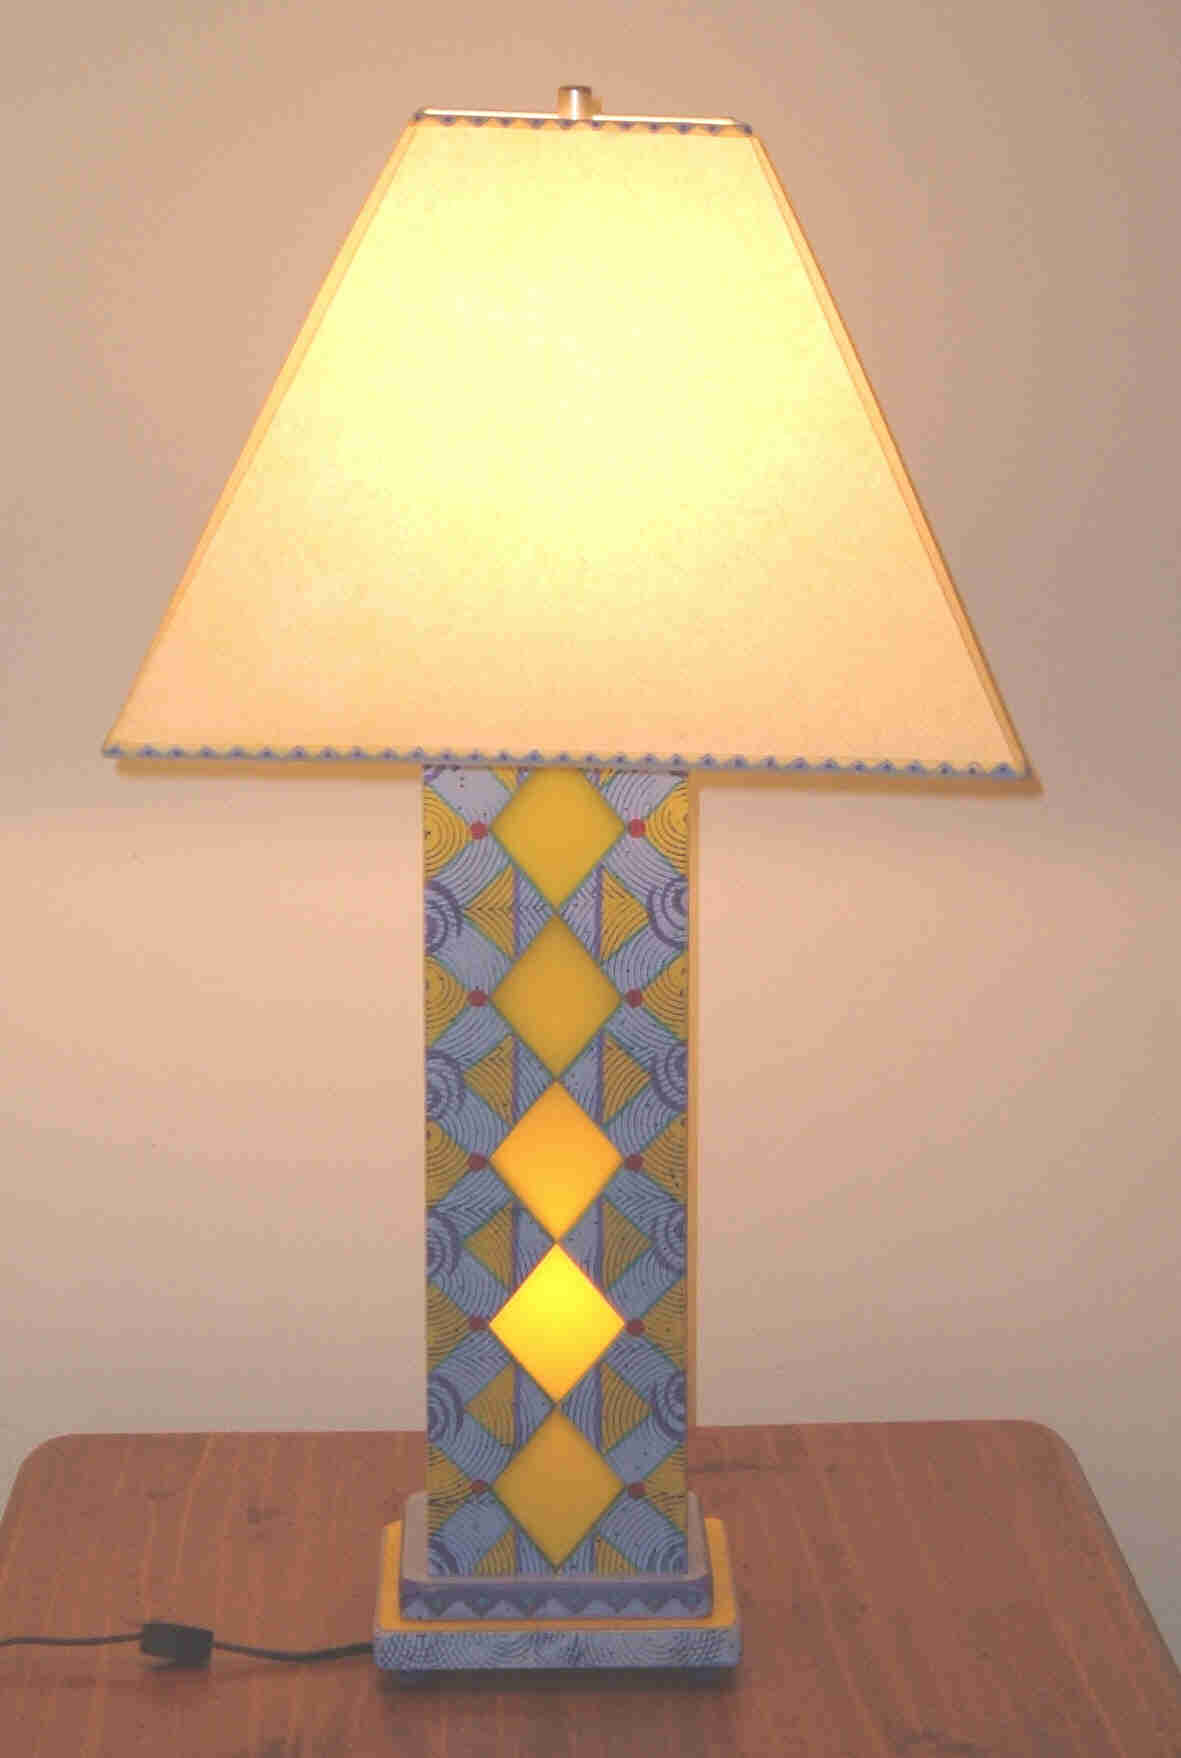 innovation table marvelous yellow ceramic floor wooden most lamp lamps white small glass